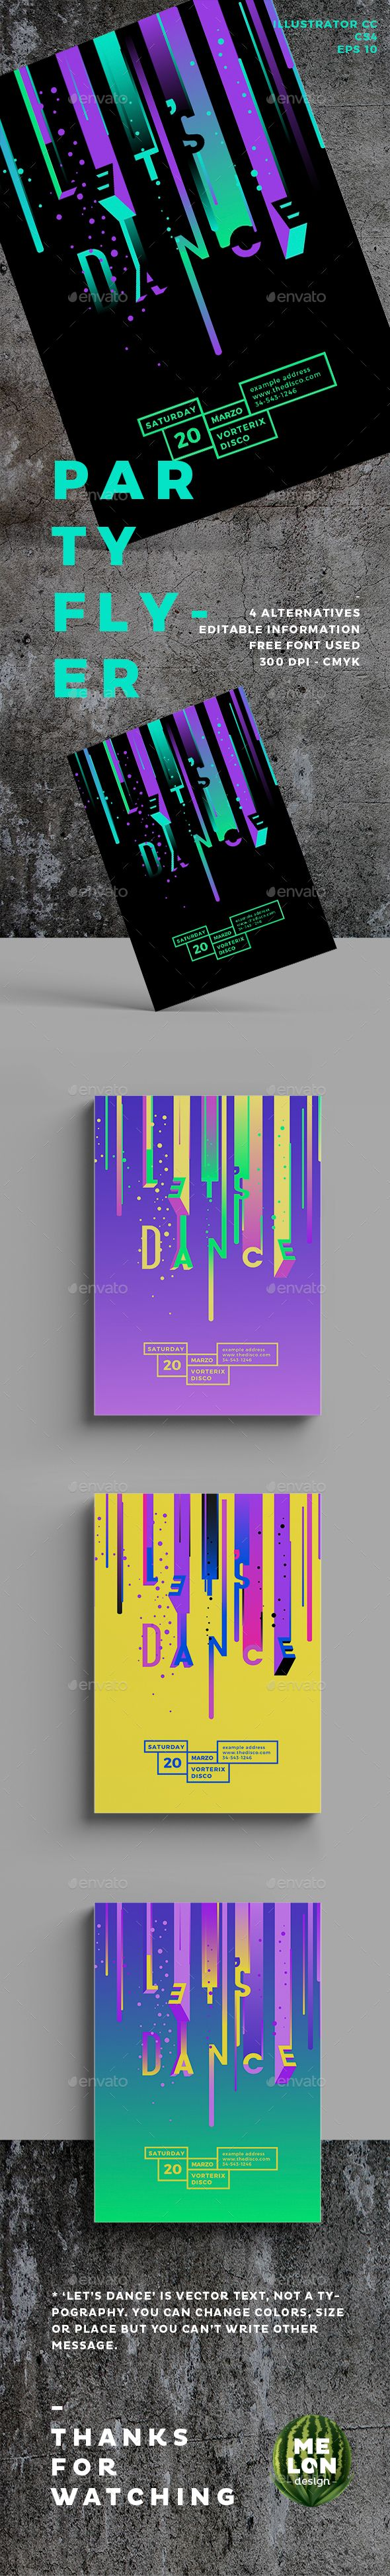 Poster design ideas pinterest - Disco Flyer Flyer Designevent Poster